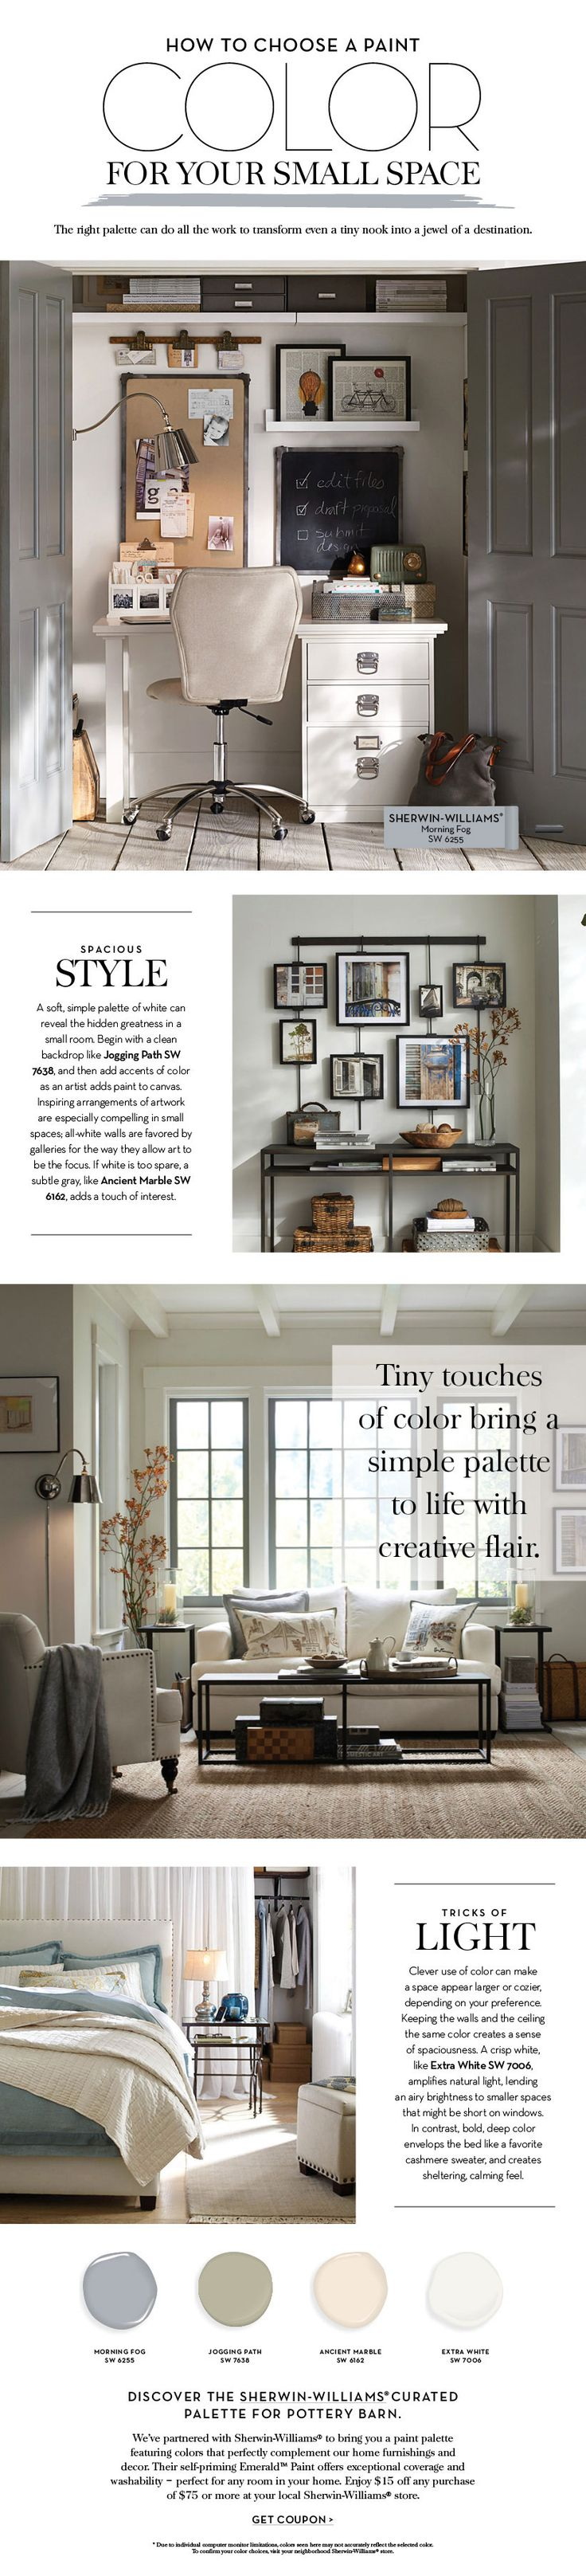 Choose a Paint Color For Your Small Space | Pottery Barn